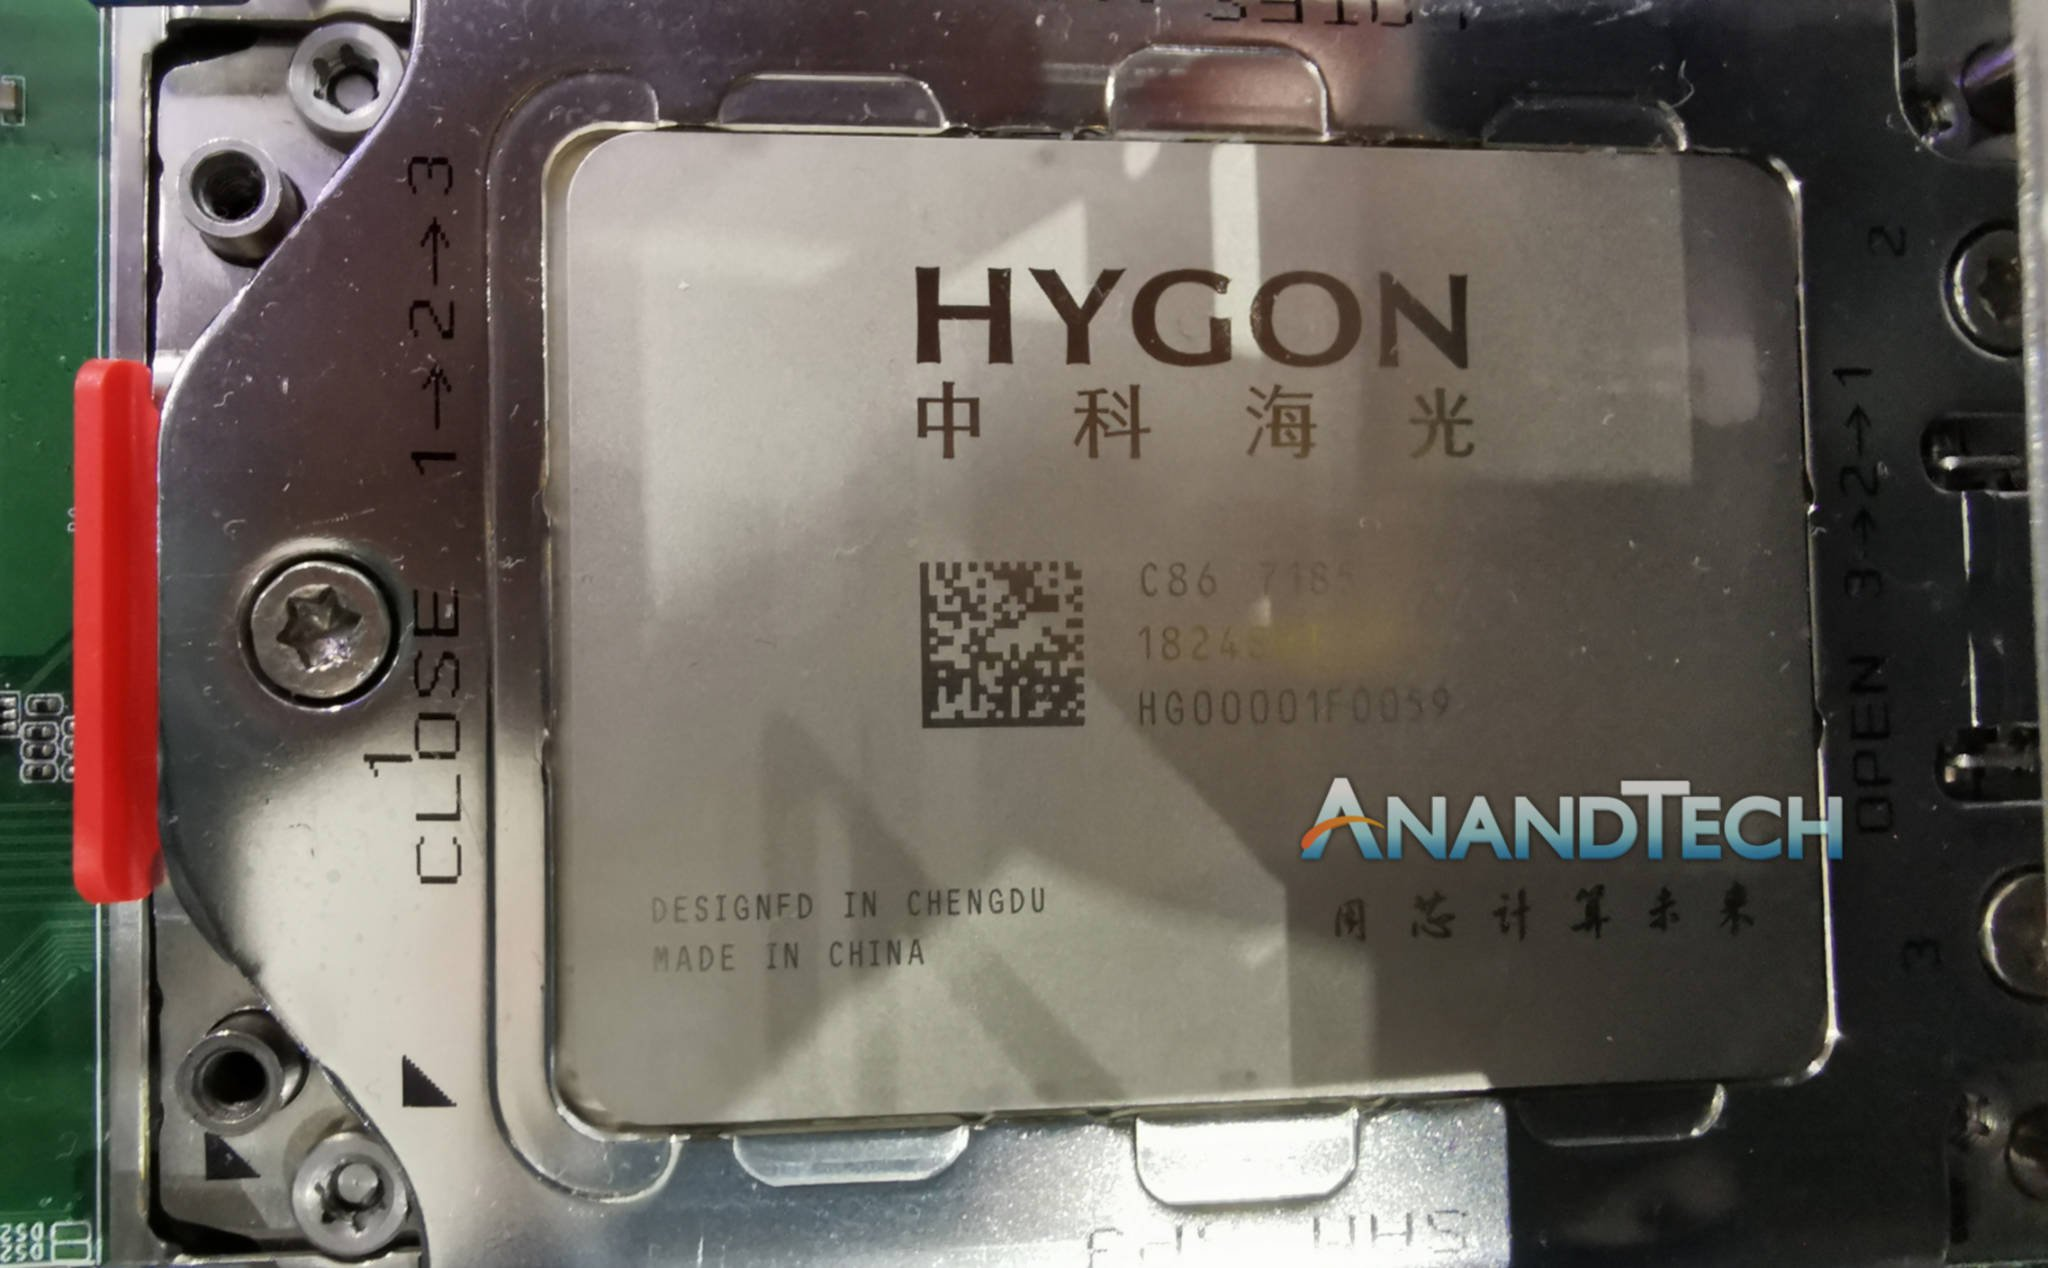 Revealing Hygon - the CPU developed by China based on AMD's Zen architecture